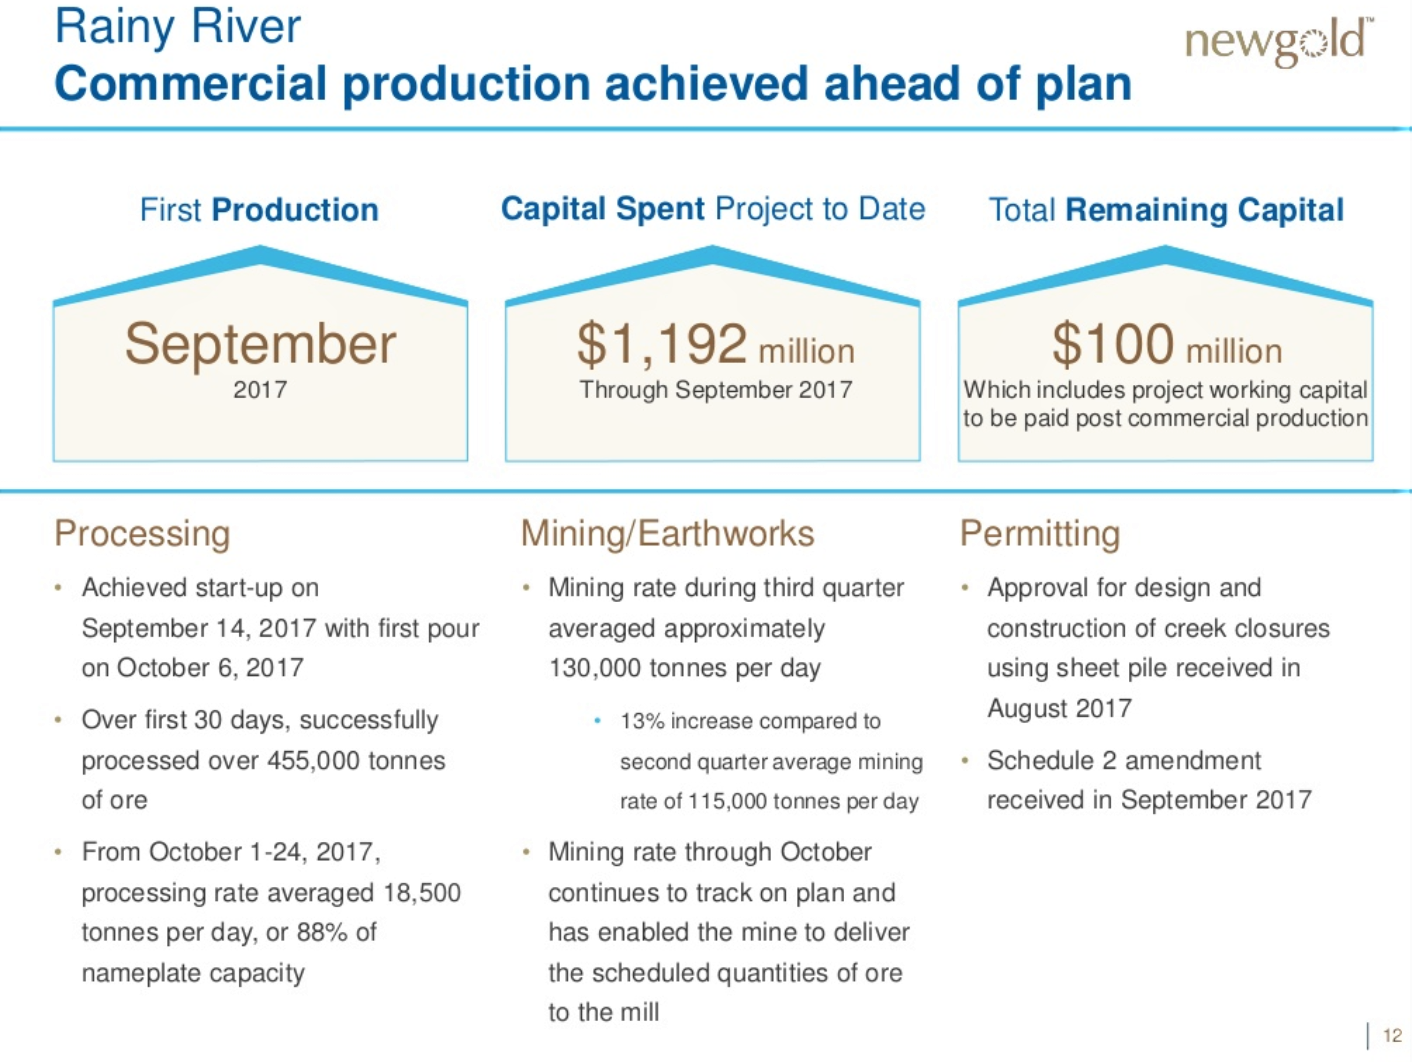 Gold a typical year end buying opportunity new gold inc mine achieved commercial production approximately two weeks ahead of schedule its first gold pour was on october 6 2017 the processing rate averaged nvjuhfo Image collections